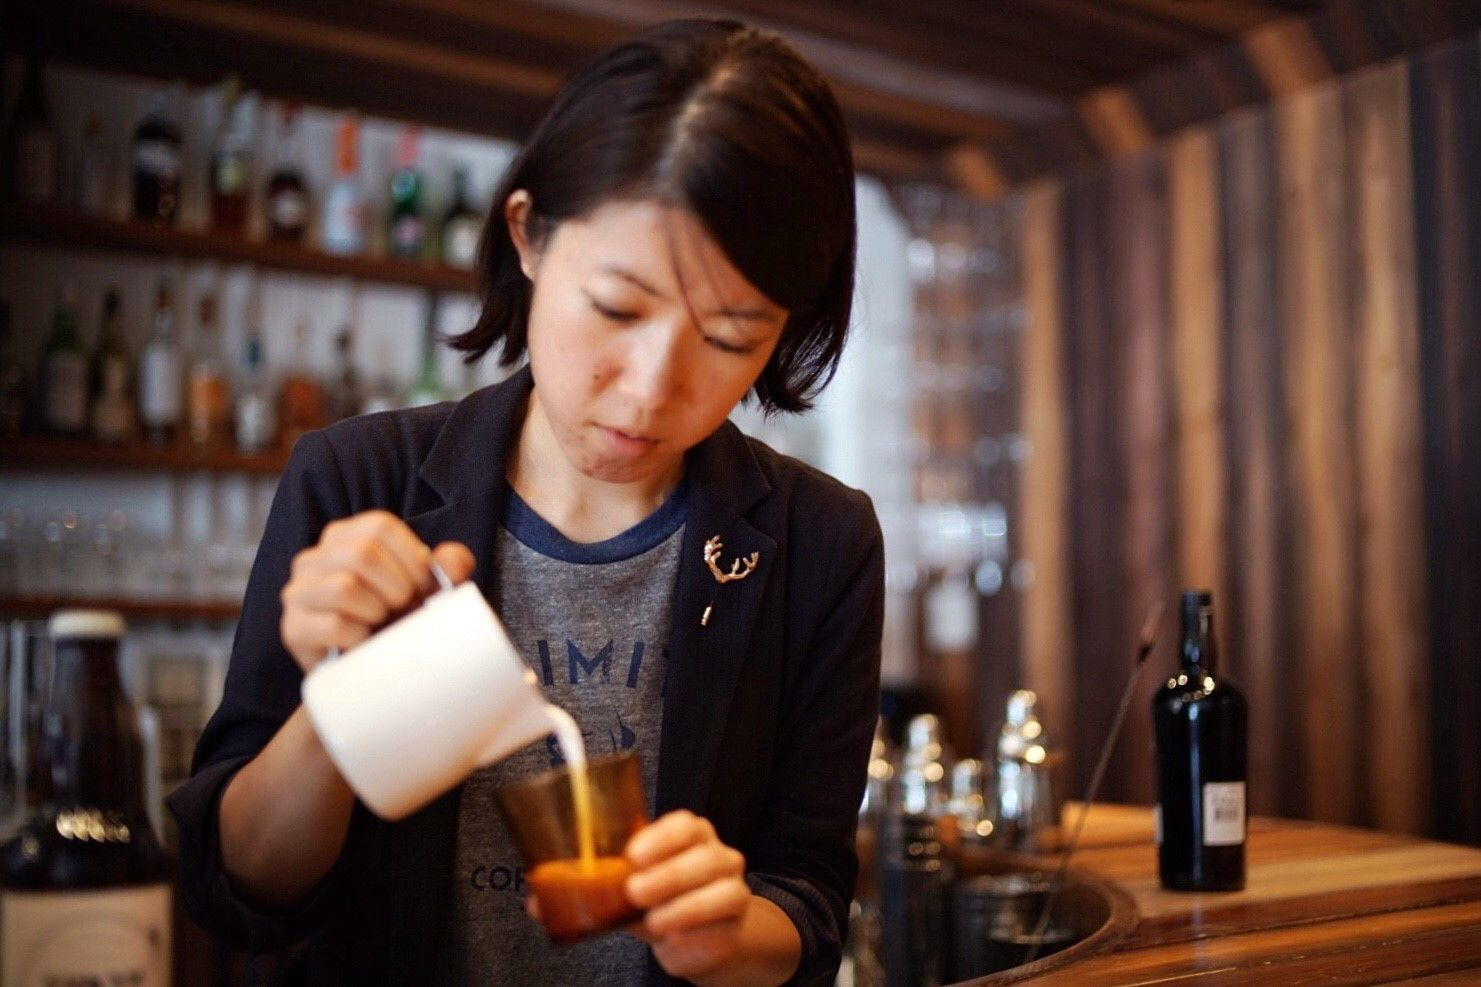 Endless possibilities at unlimited coffee bar in tokyo